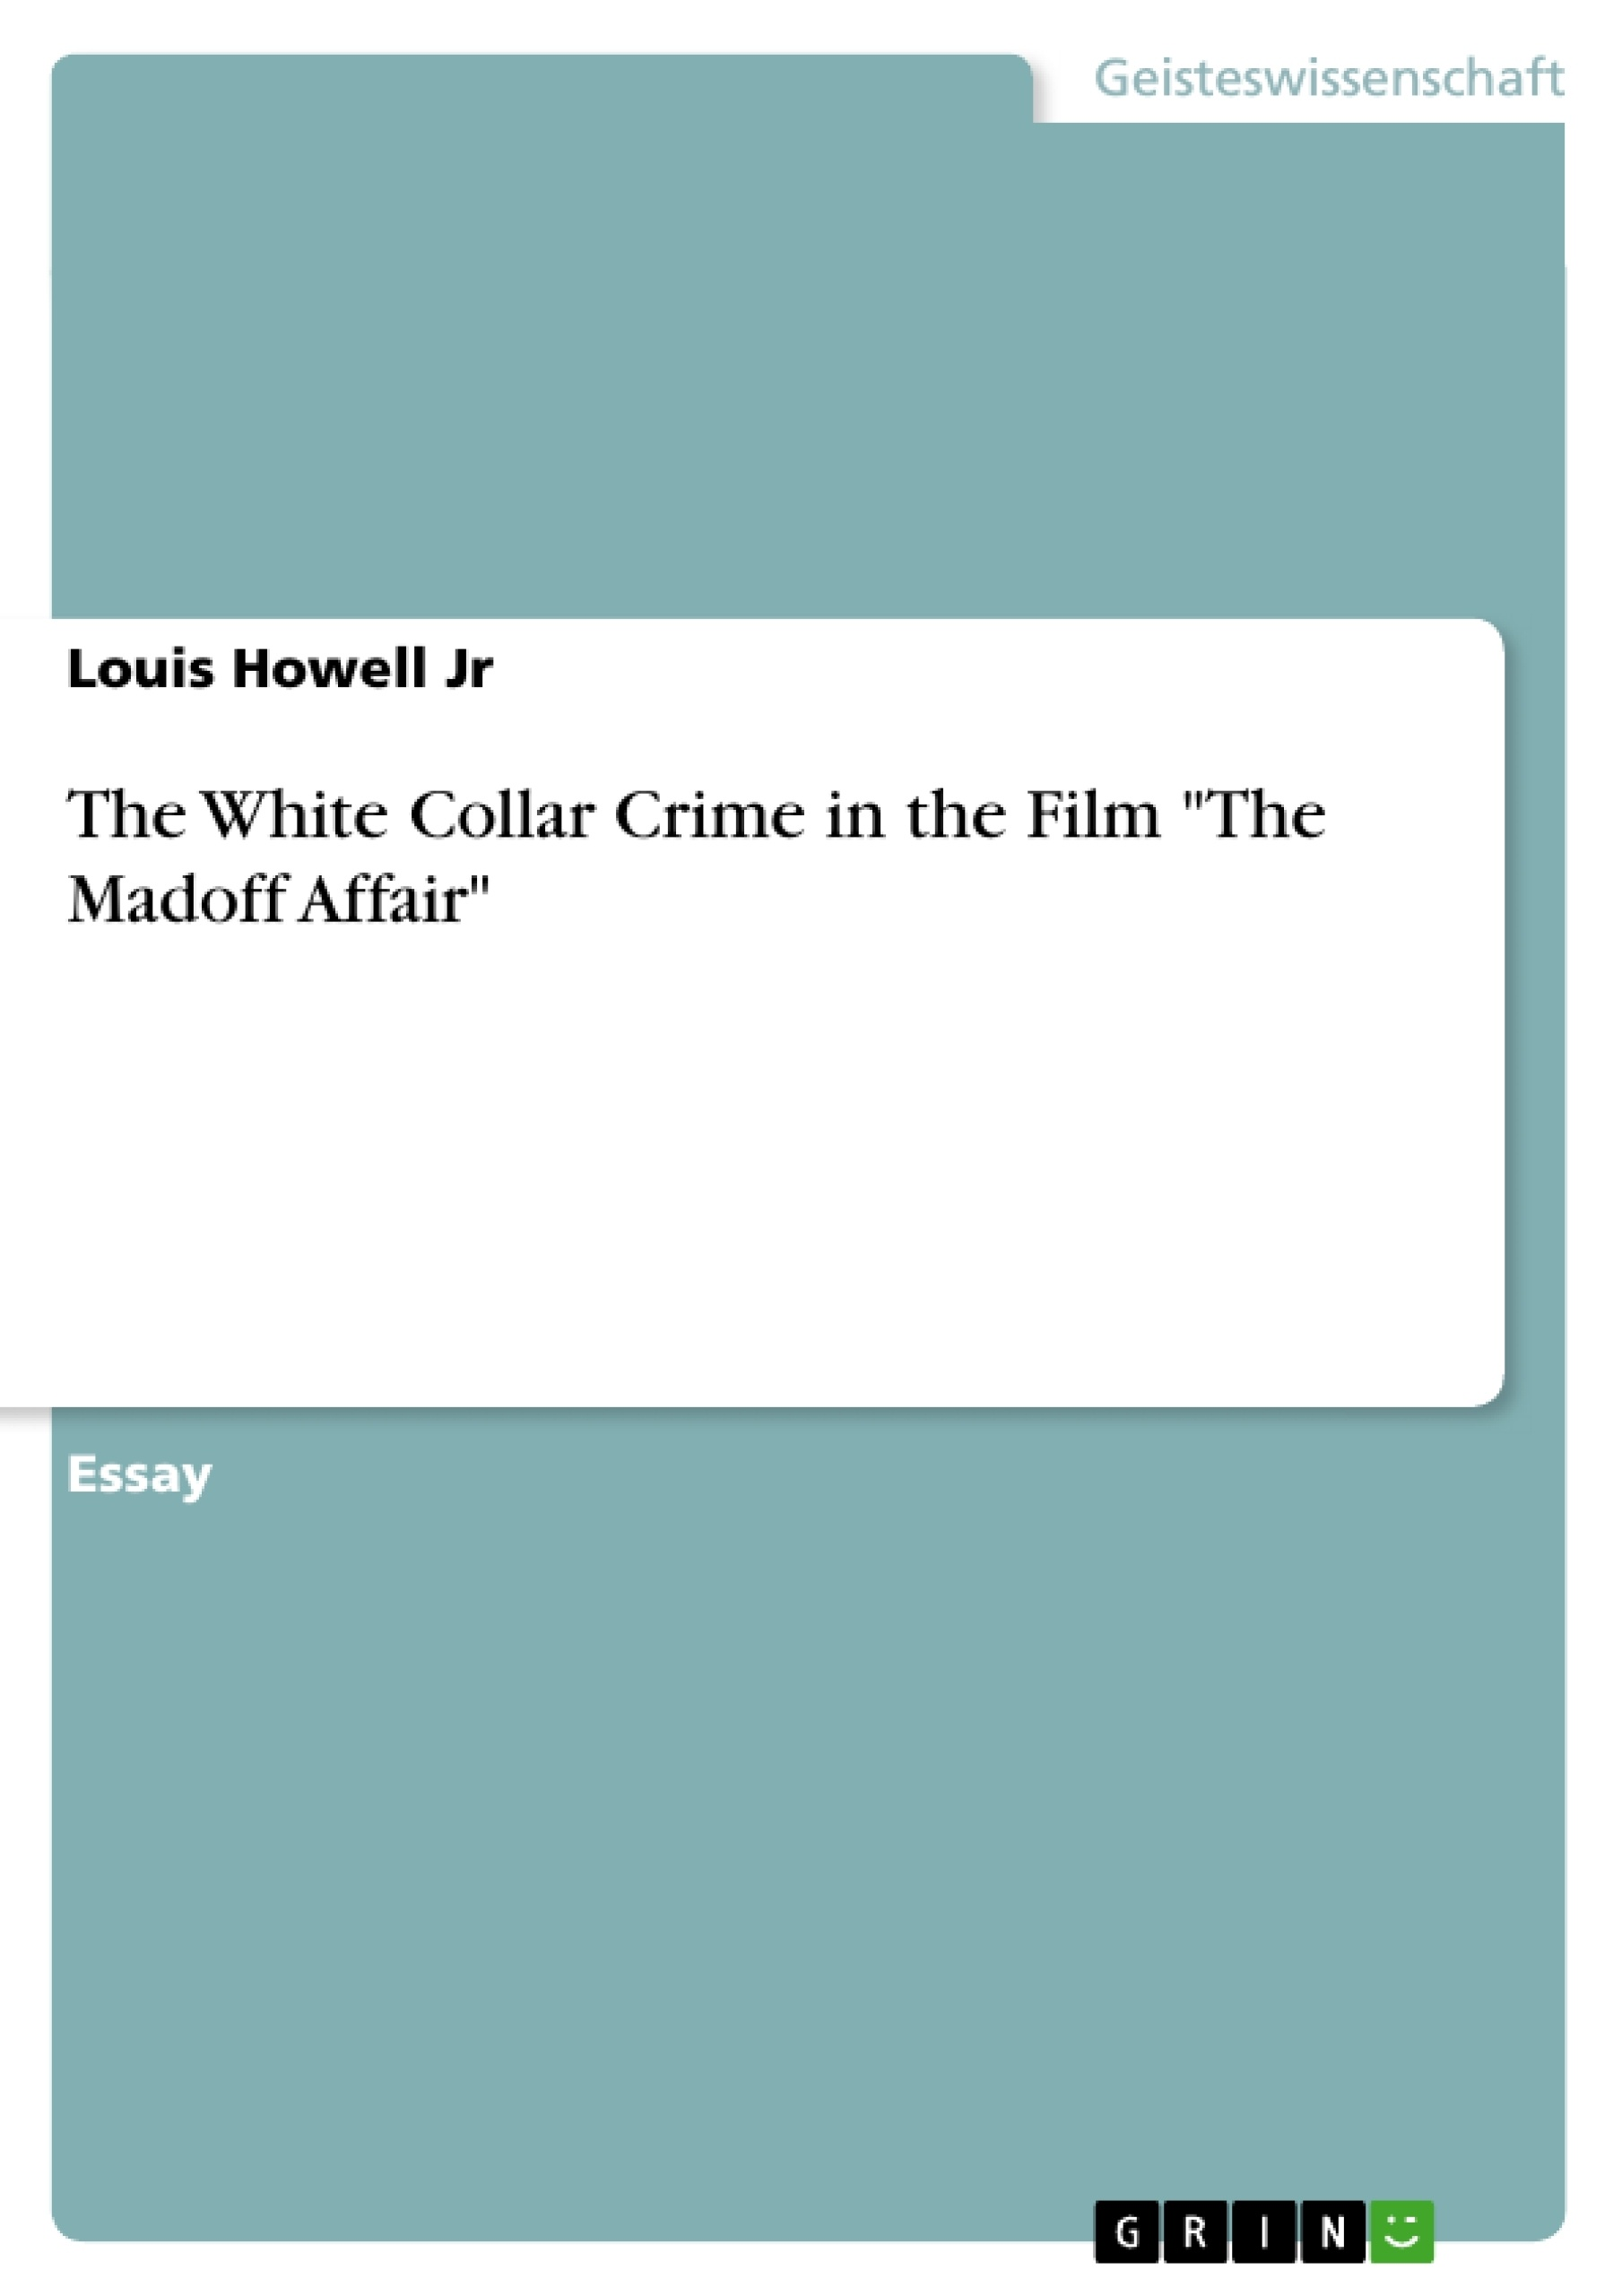 the white collar crime in the film the madoff affair the white collar crime in the film the madoff affair masterarbeit hausarbeit bachelorarbeit veroumlffentlichen